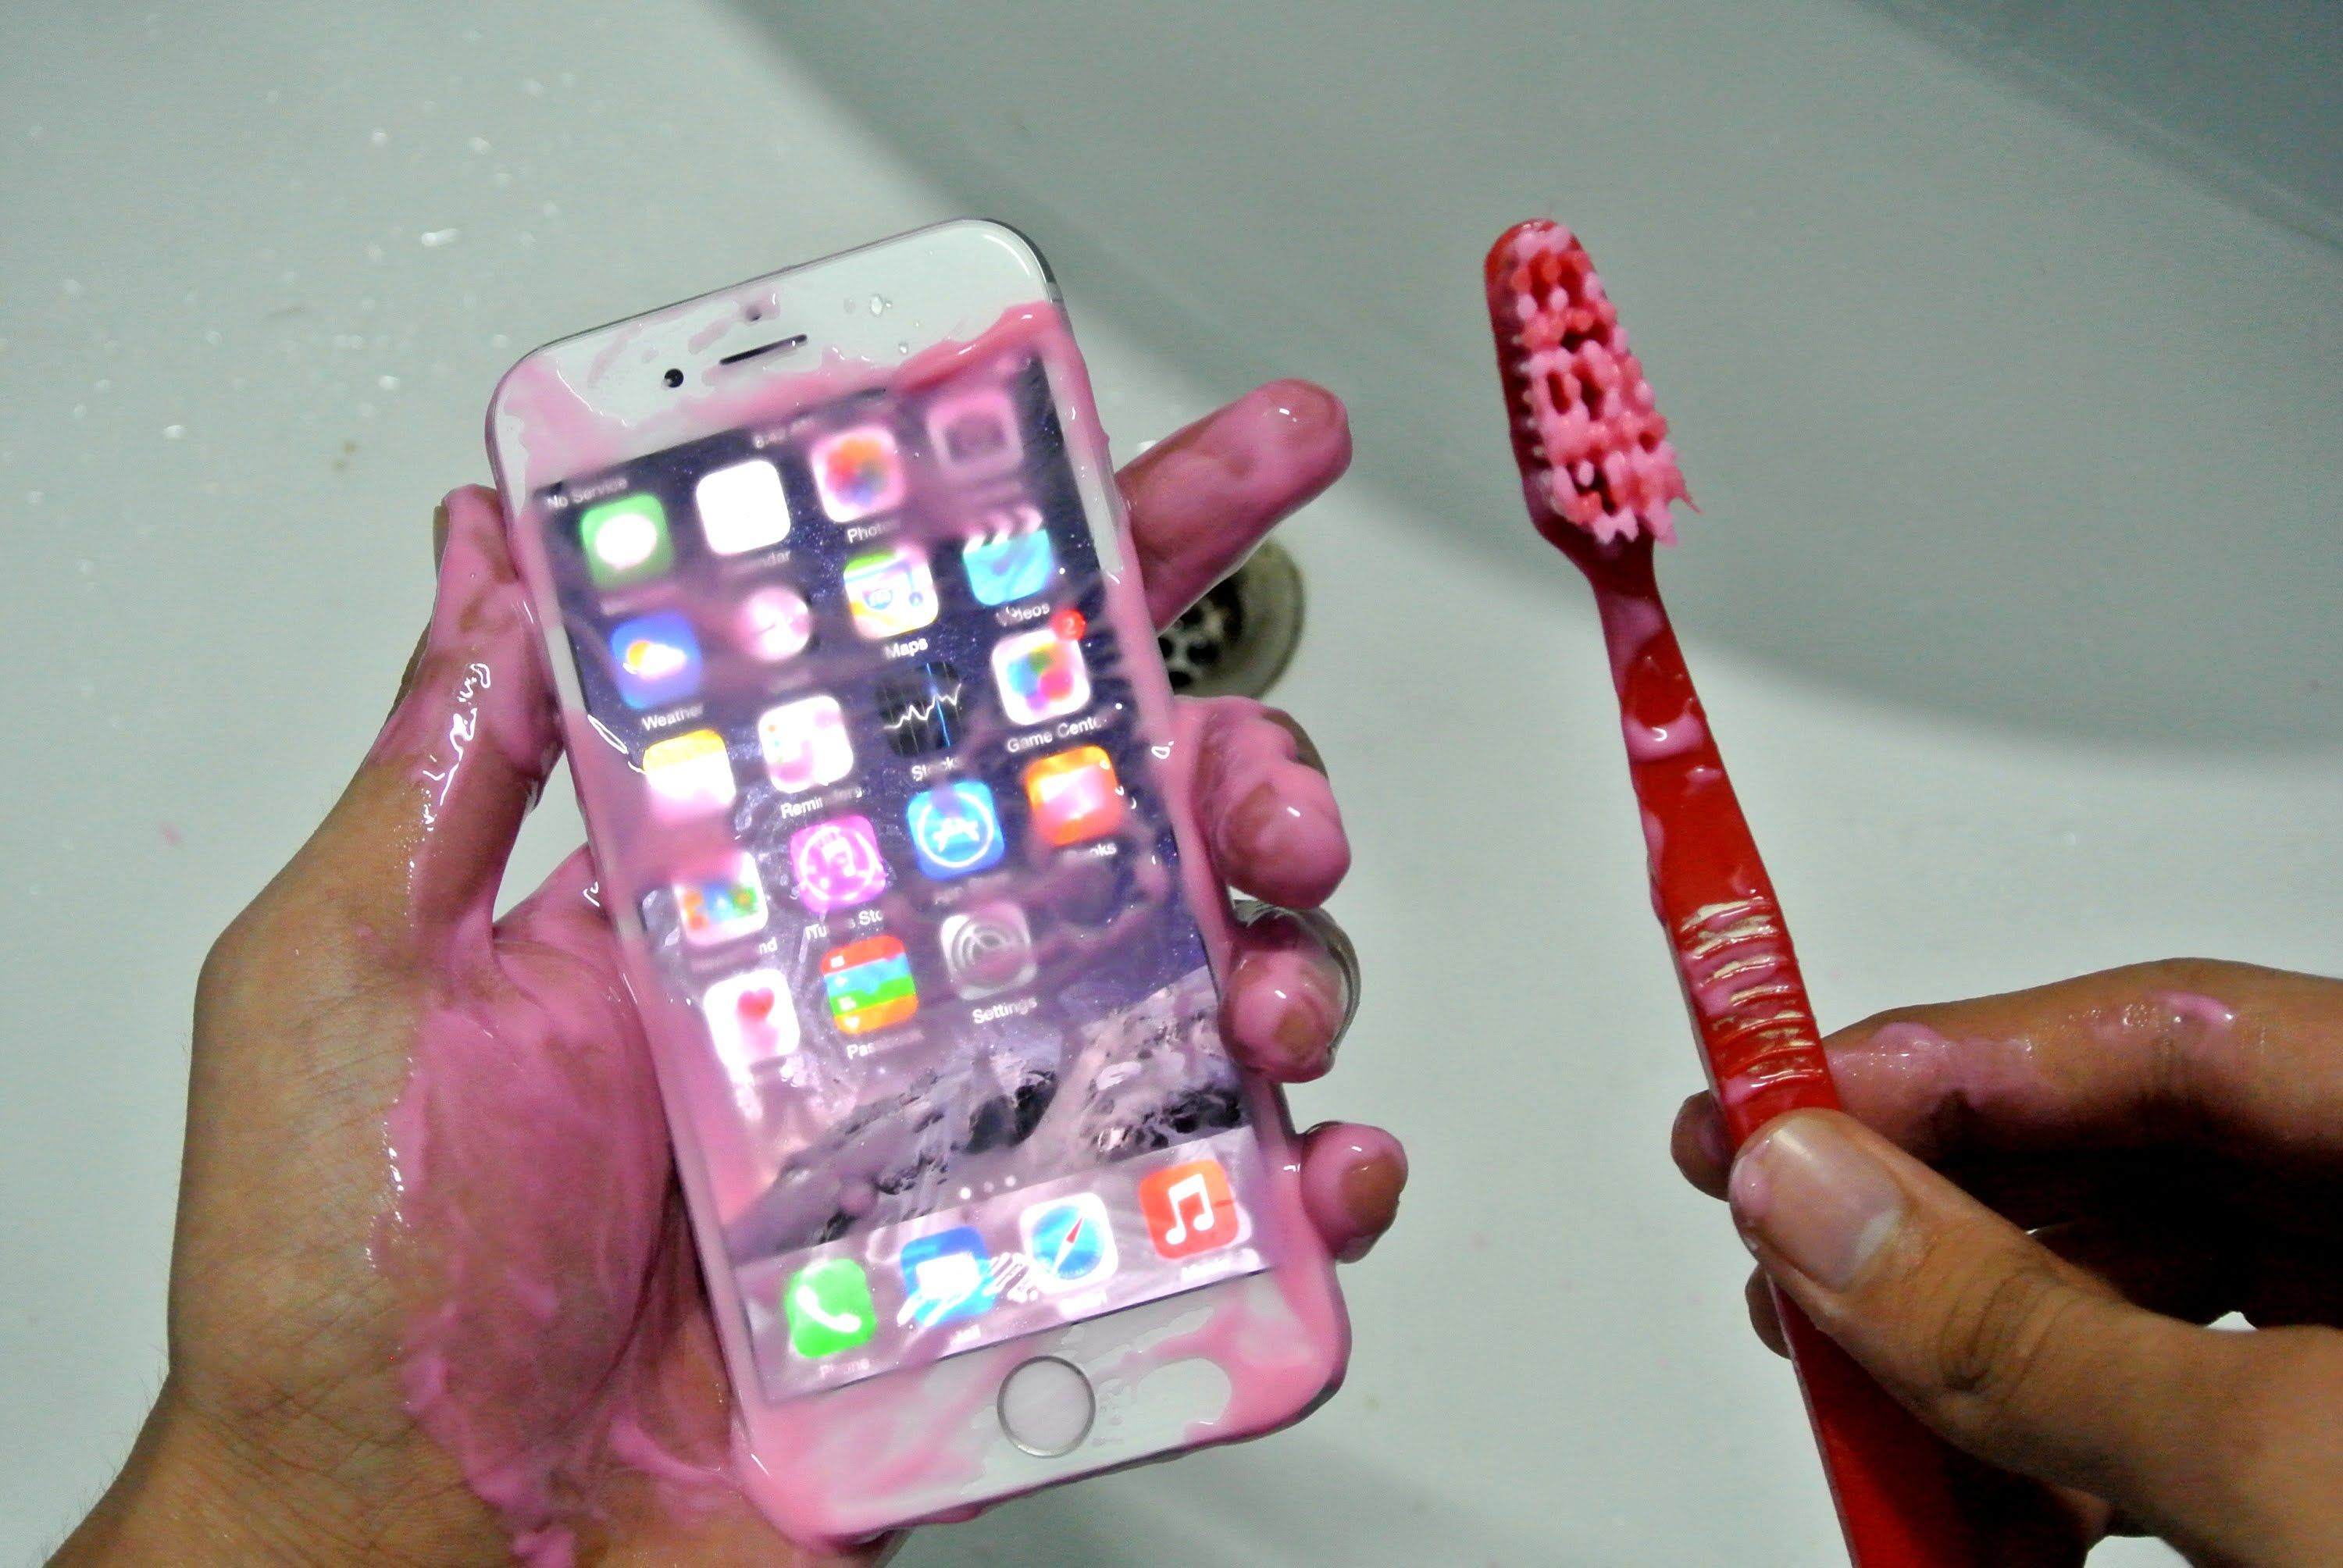 how to remove scratches from phone screen with toothpaste